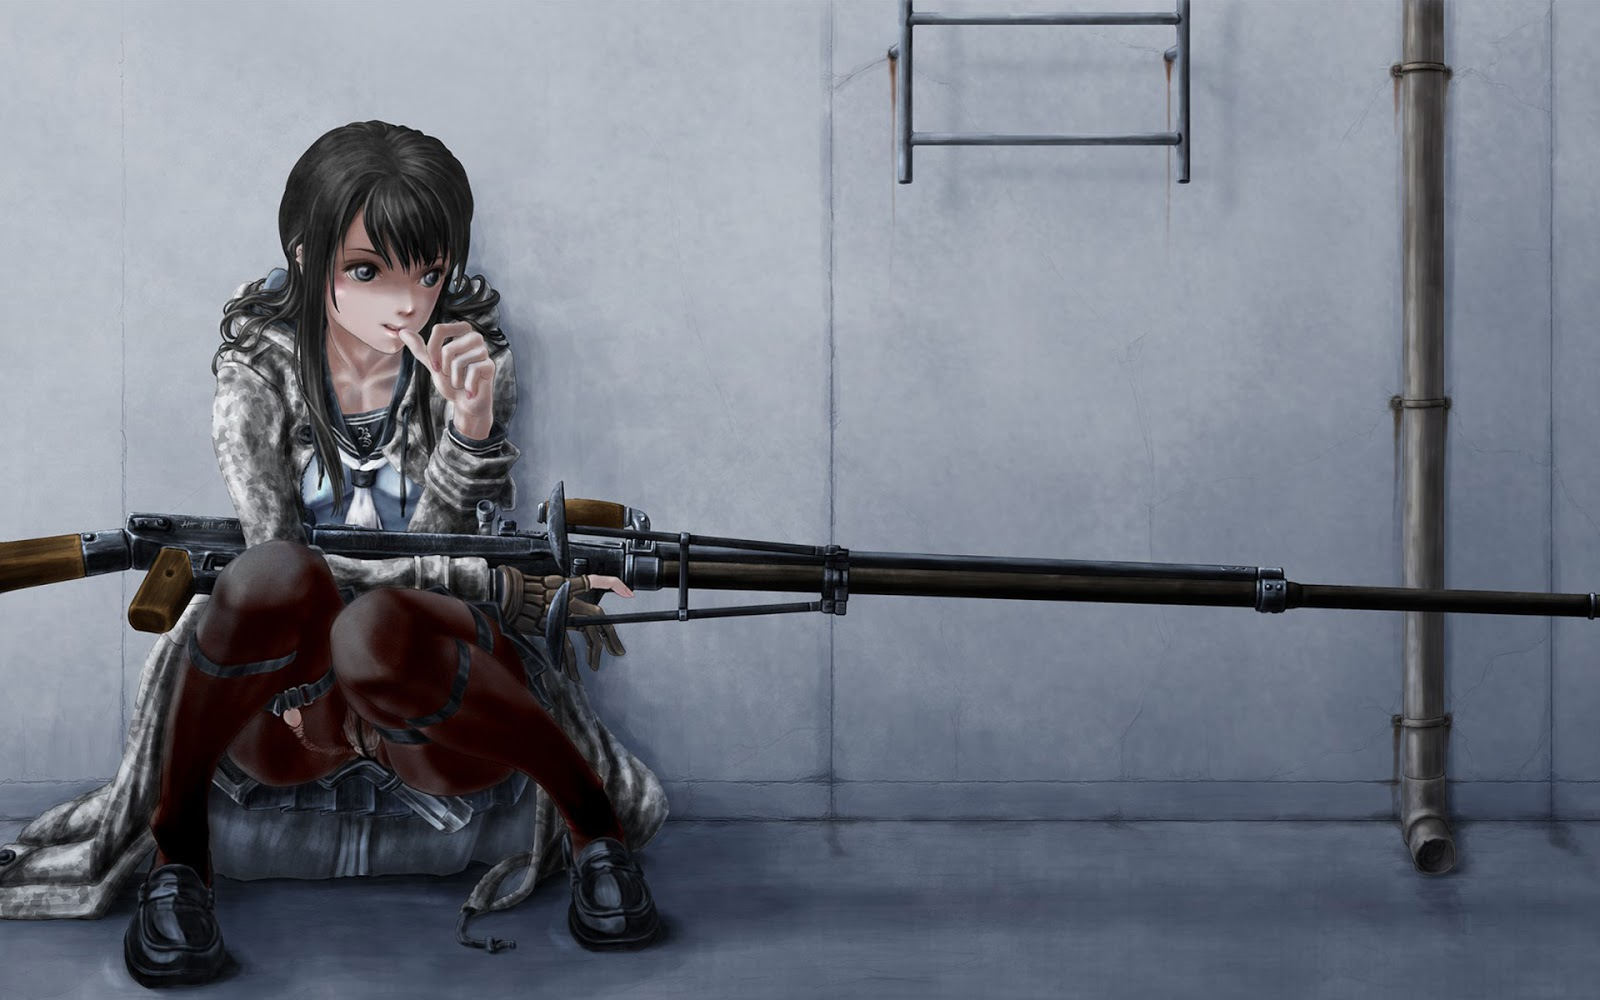 Anime Sniper Girl HD Wallpaper Desktop PC Background 1600x1000